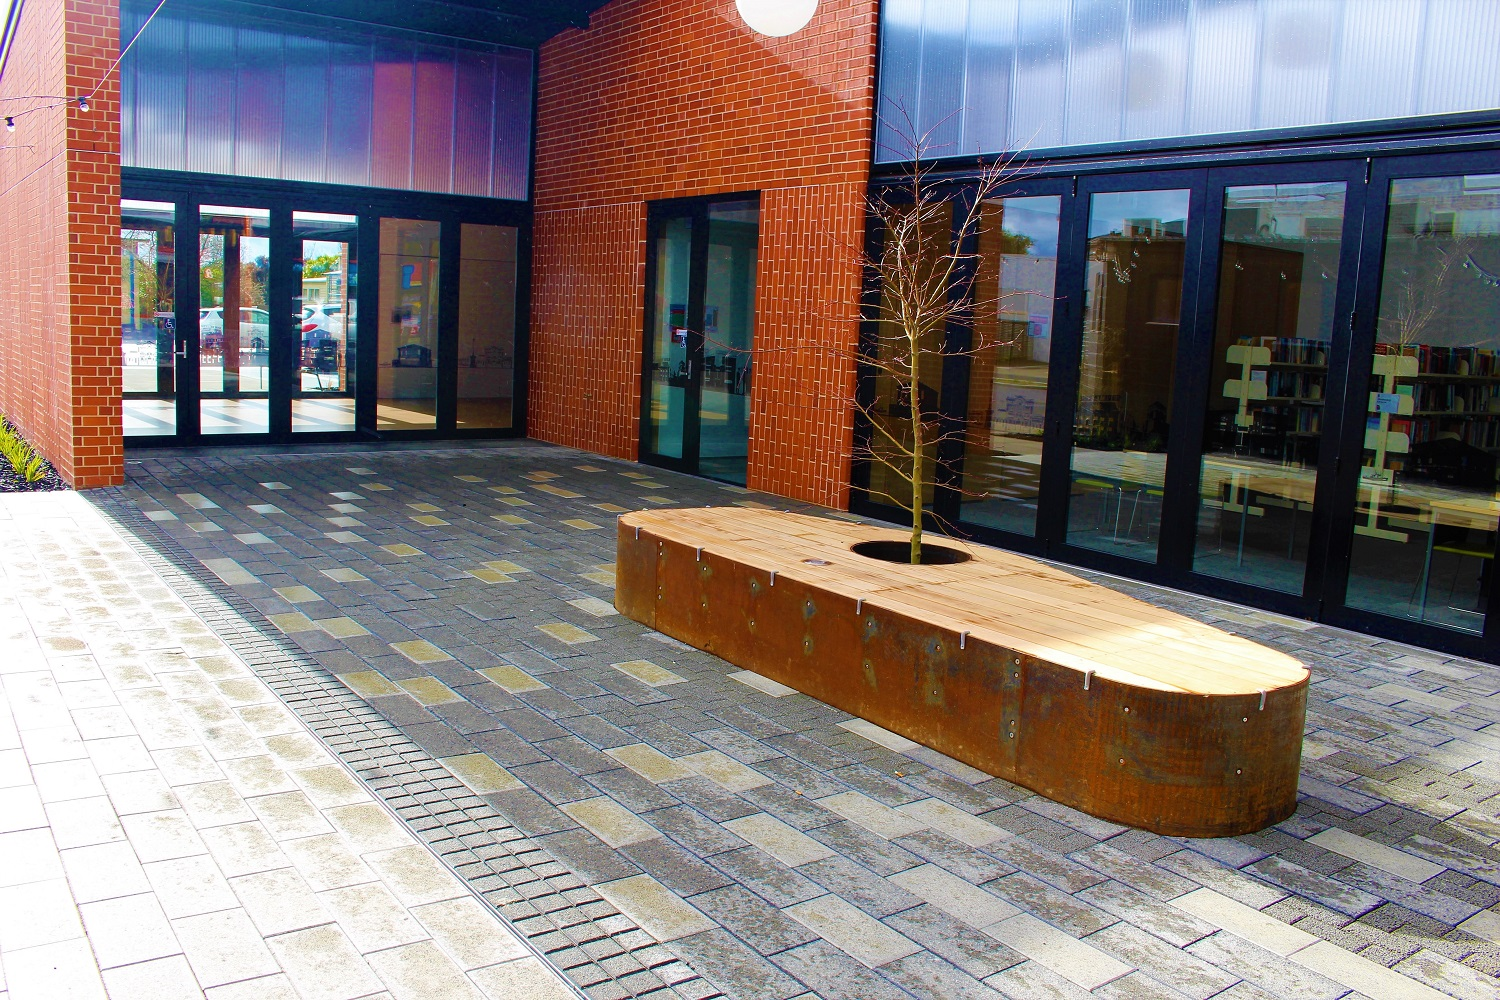 Courtyard with paving and a seat in the middle with a tree in it